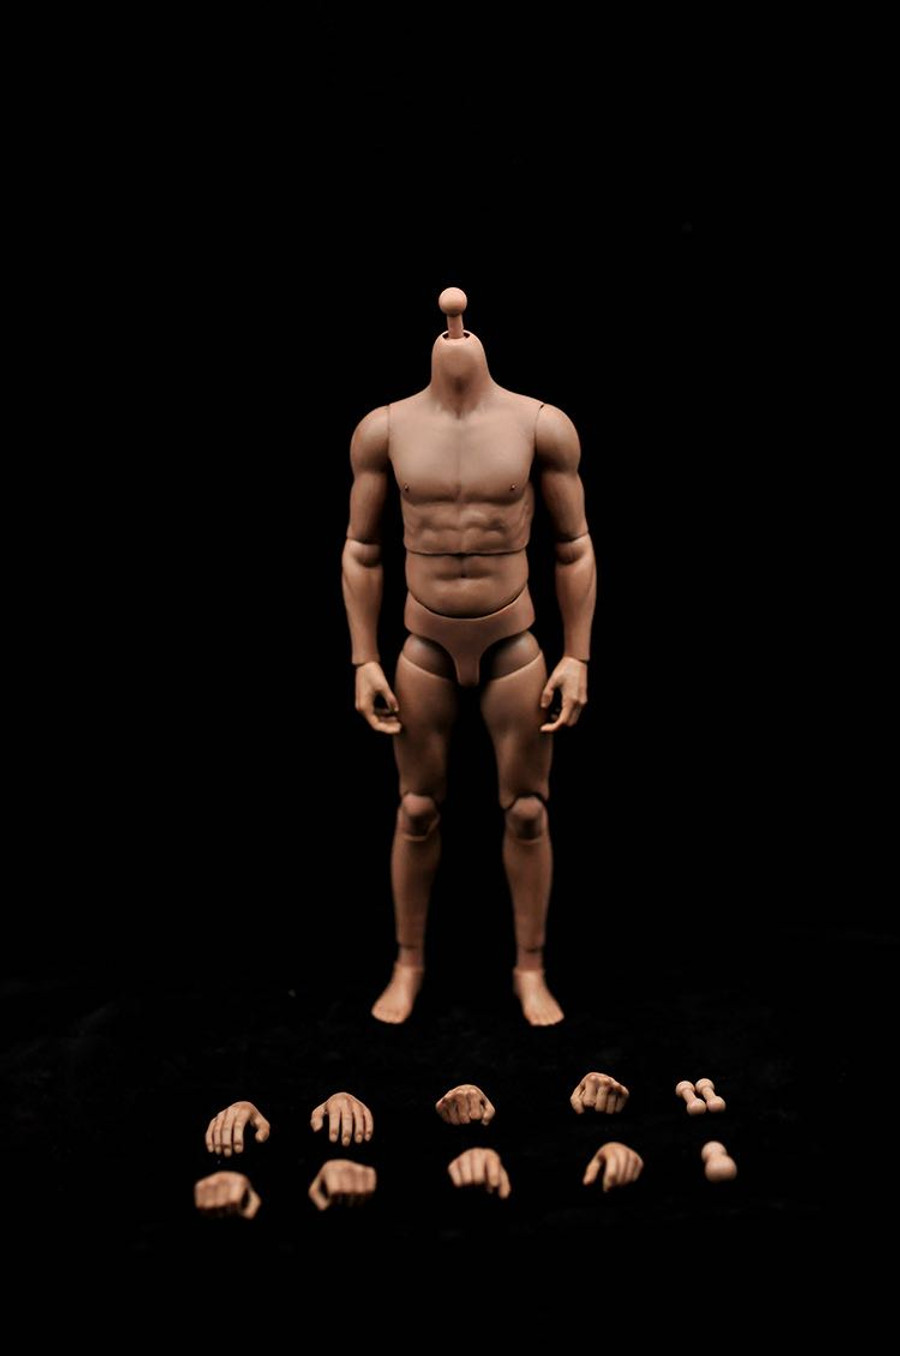 JX Toys - Strong Asian Male Muscular Body S01